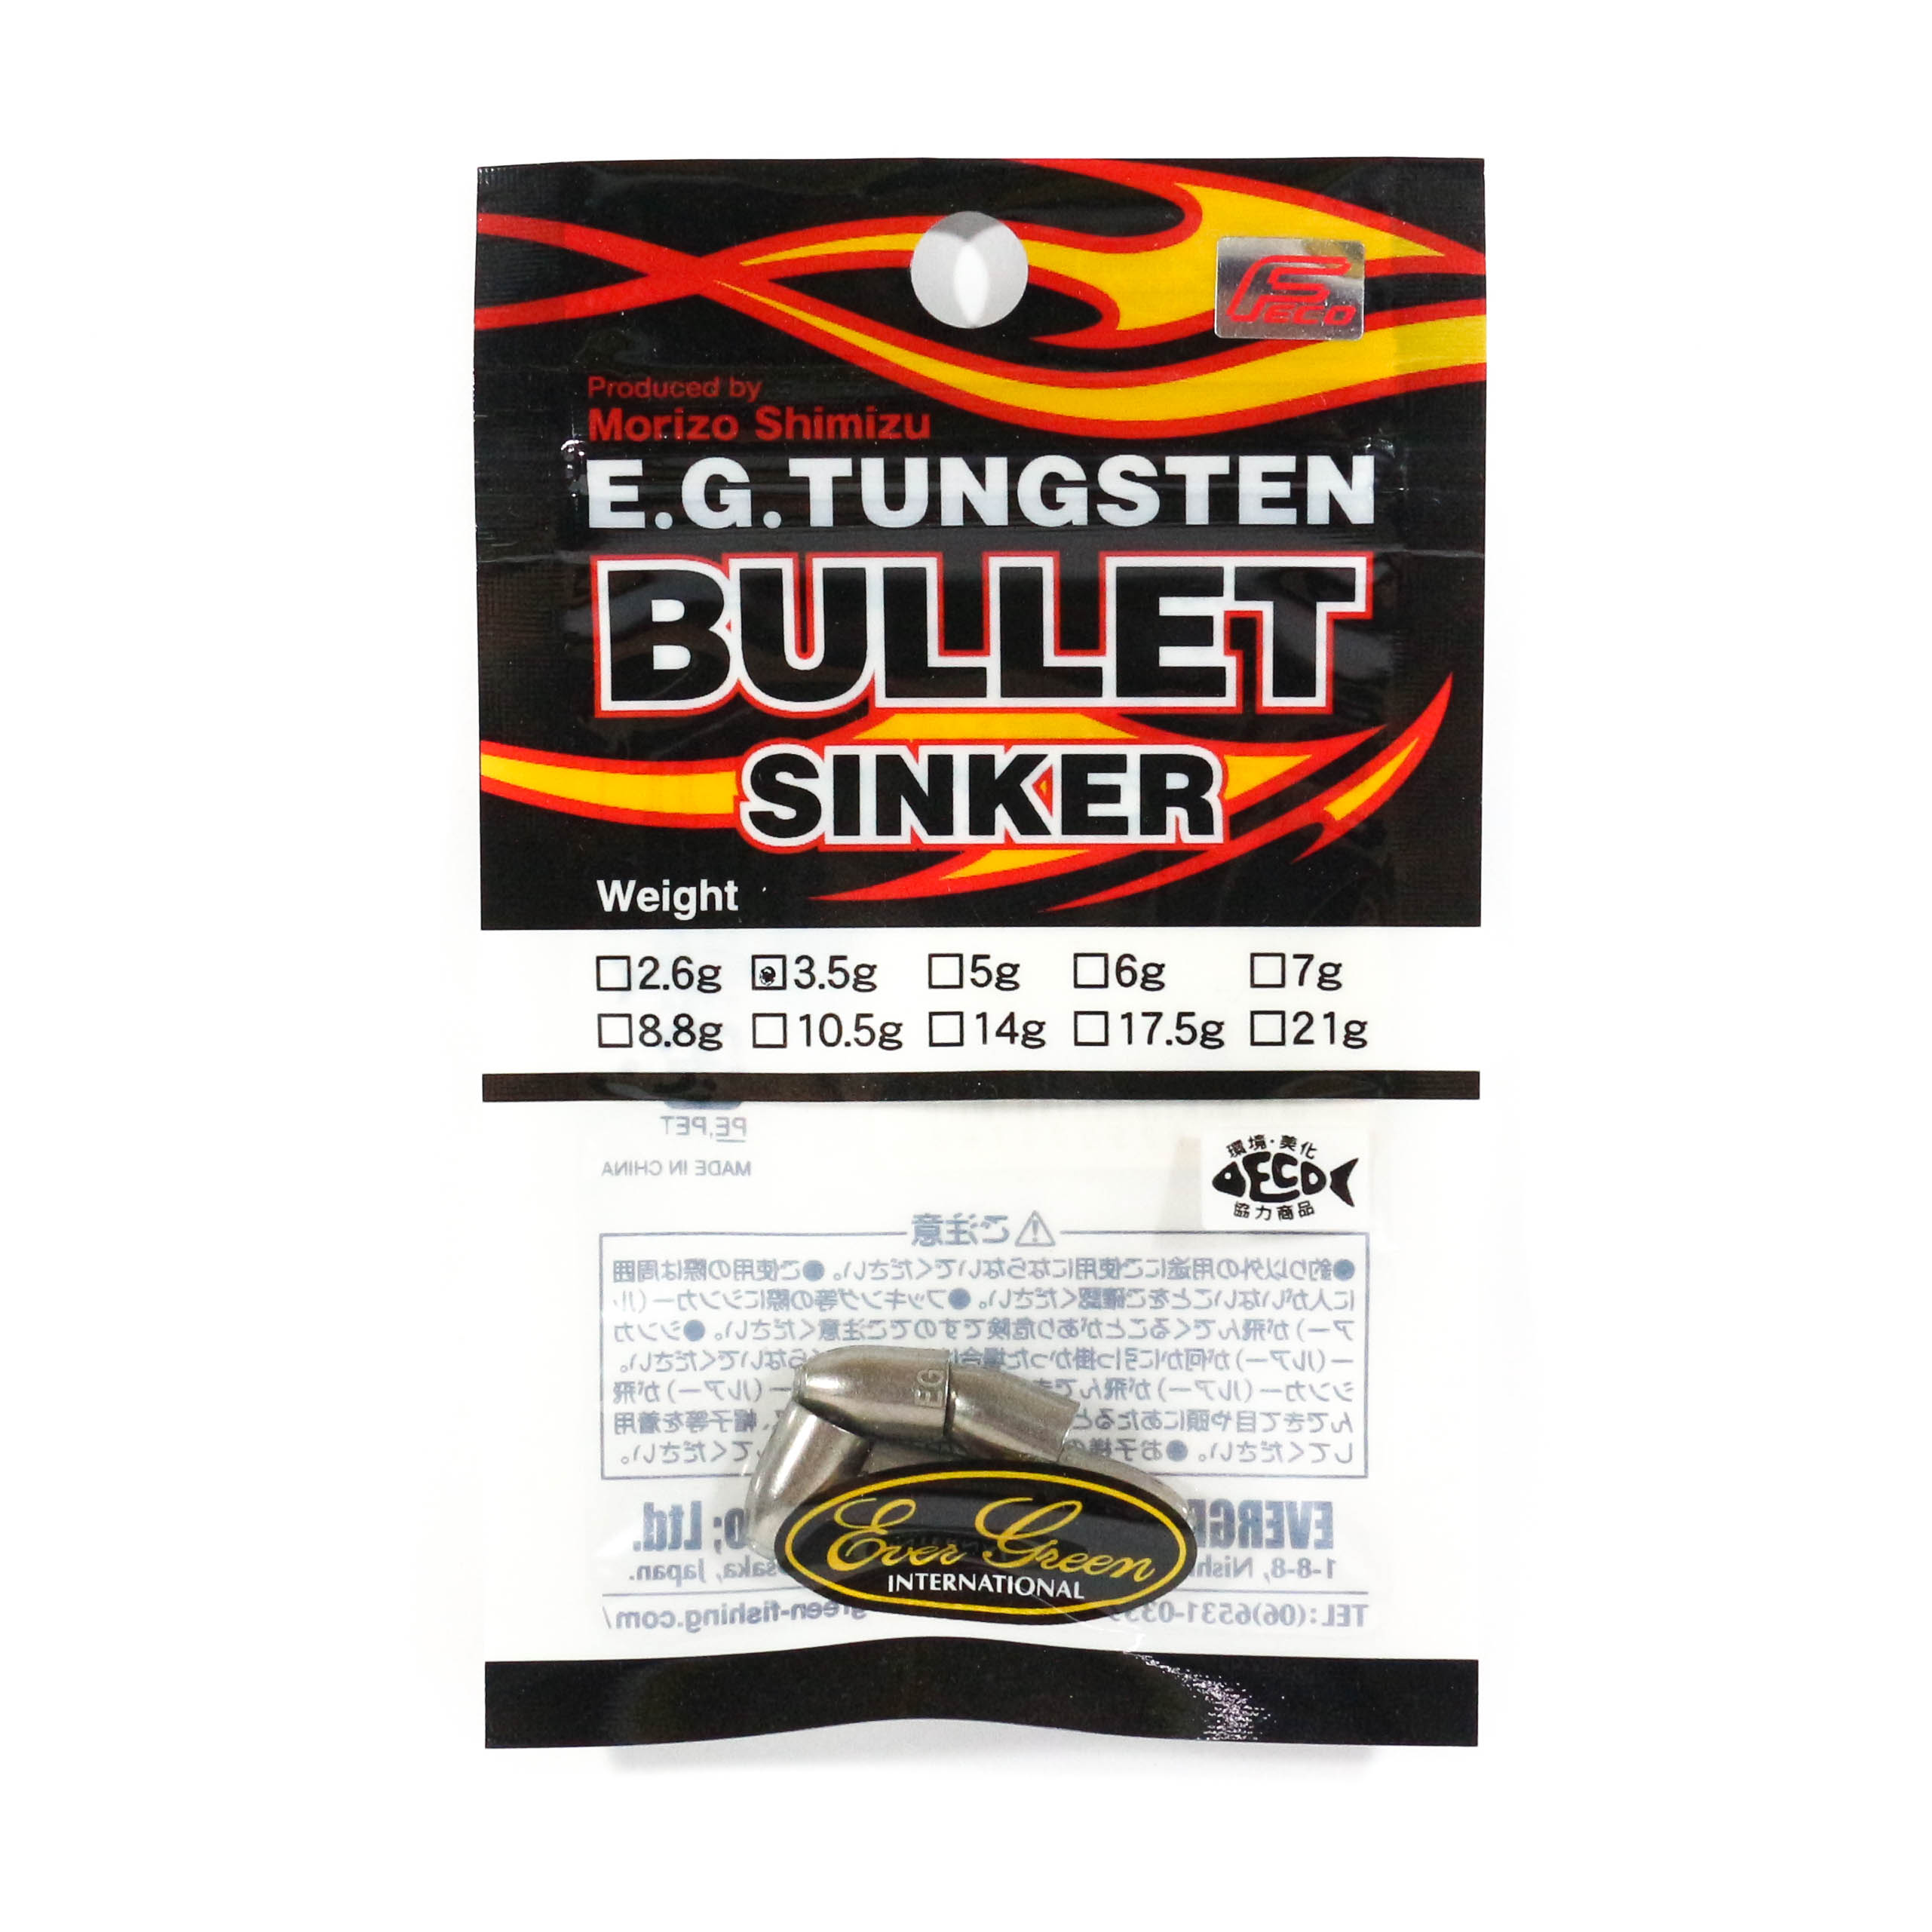 Evergreen Tungsten Bullet Sinker 1/8 oz (3.5 Grams) (1798)